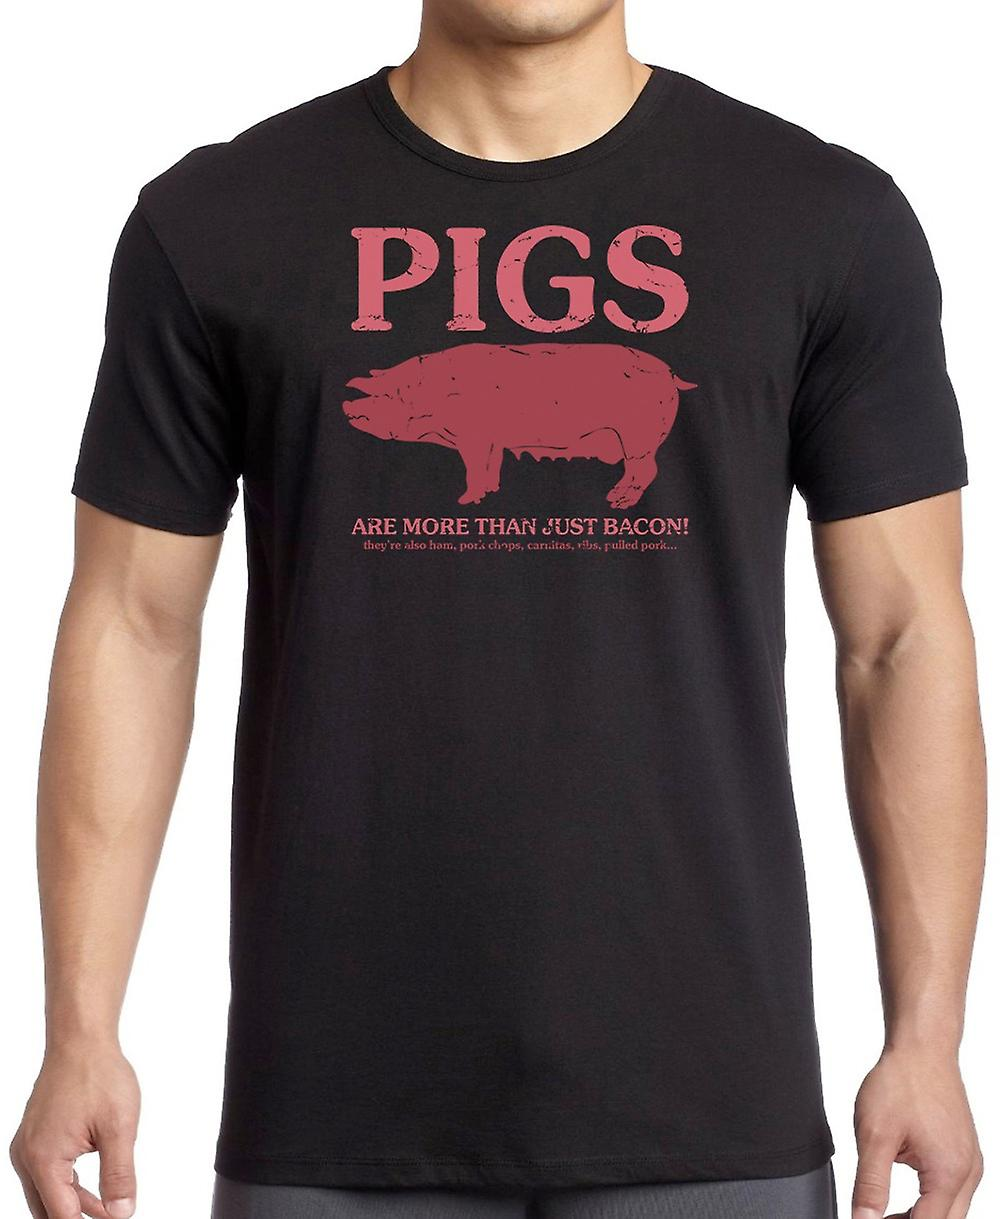 Pigs Are More Than Just Bacon -They are ham, Pork Chops ... Women T Shirt